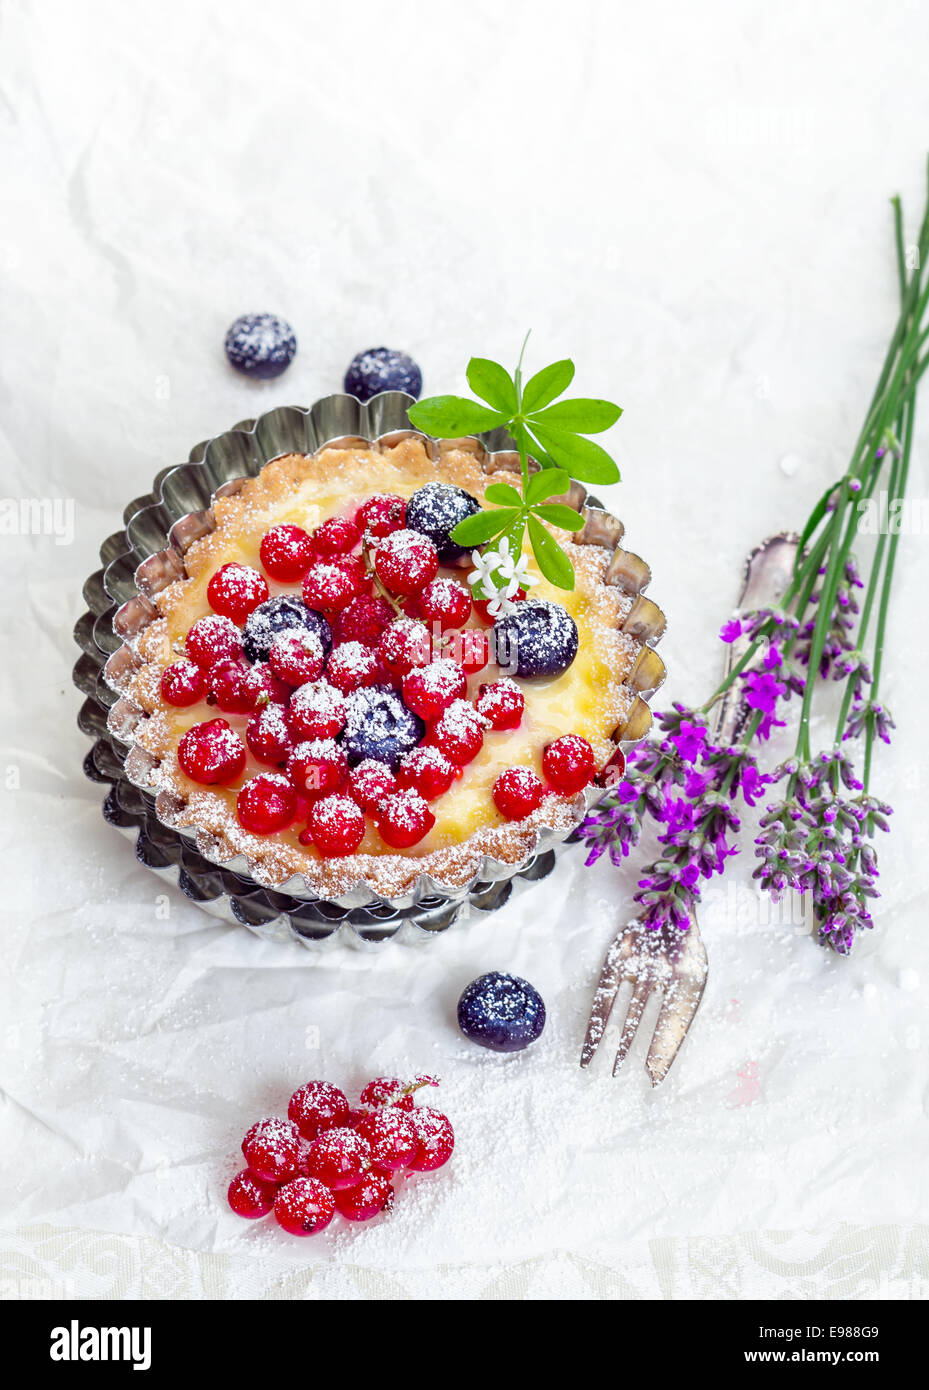 Overhead view of a delicious redcurrant tart dusted with sugar served in a fluted metal pie pan alongside a fork - Stock Image